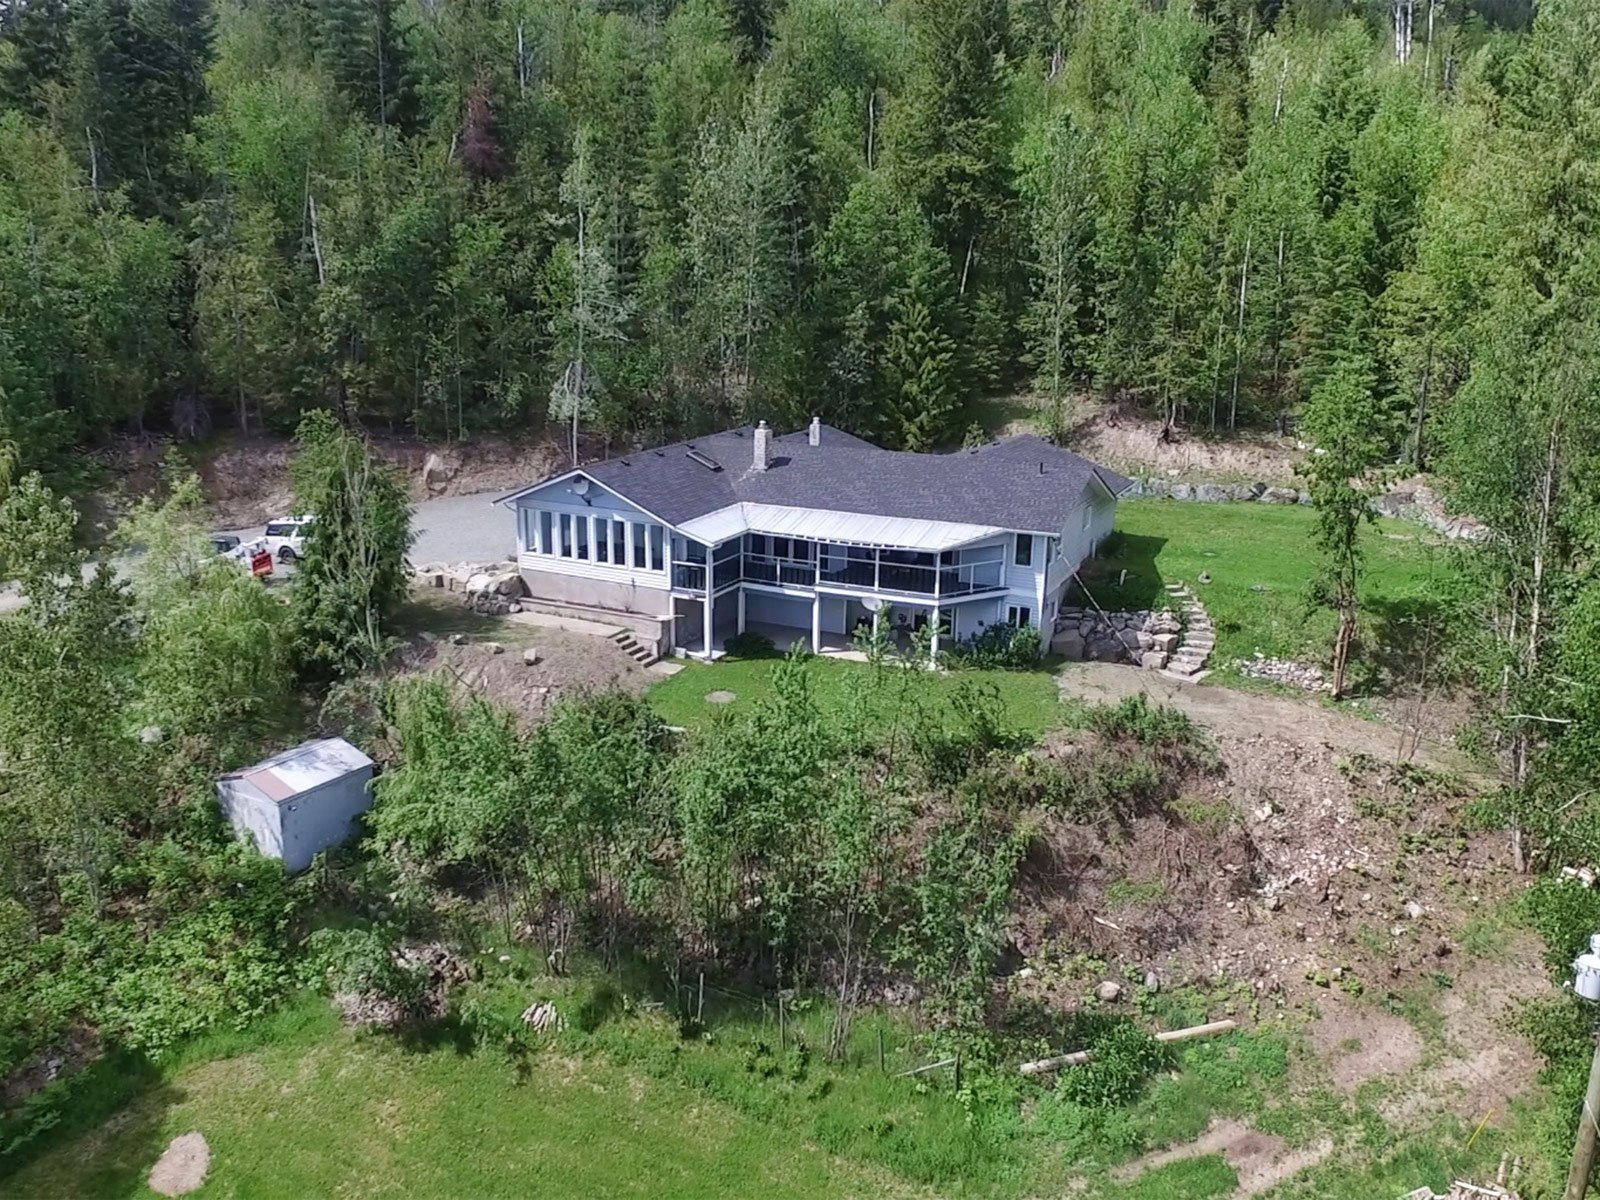 Photo 4: Photos: 6831 Magna Bay Drive in Magna Bay: House with Acreage for sale : MLS®# 10205520